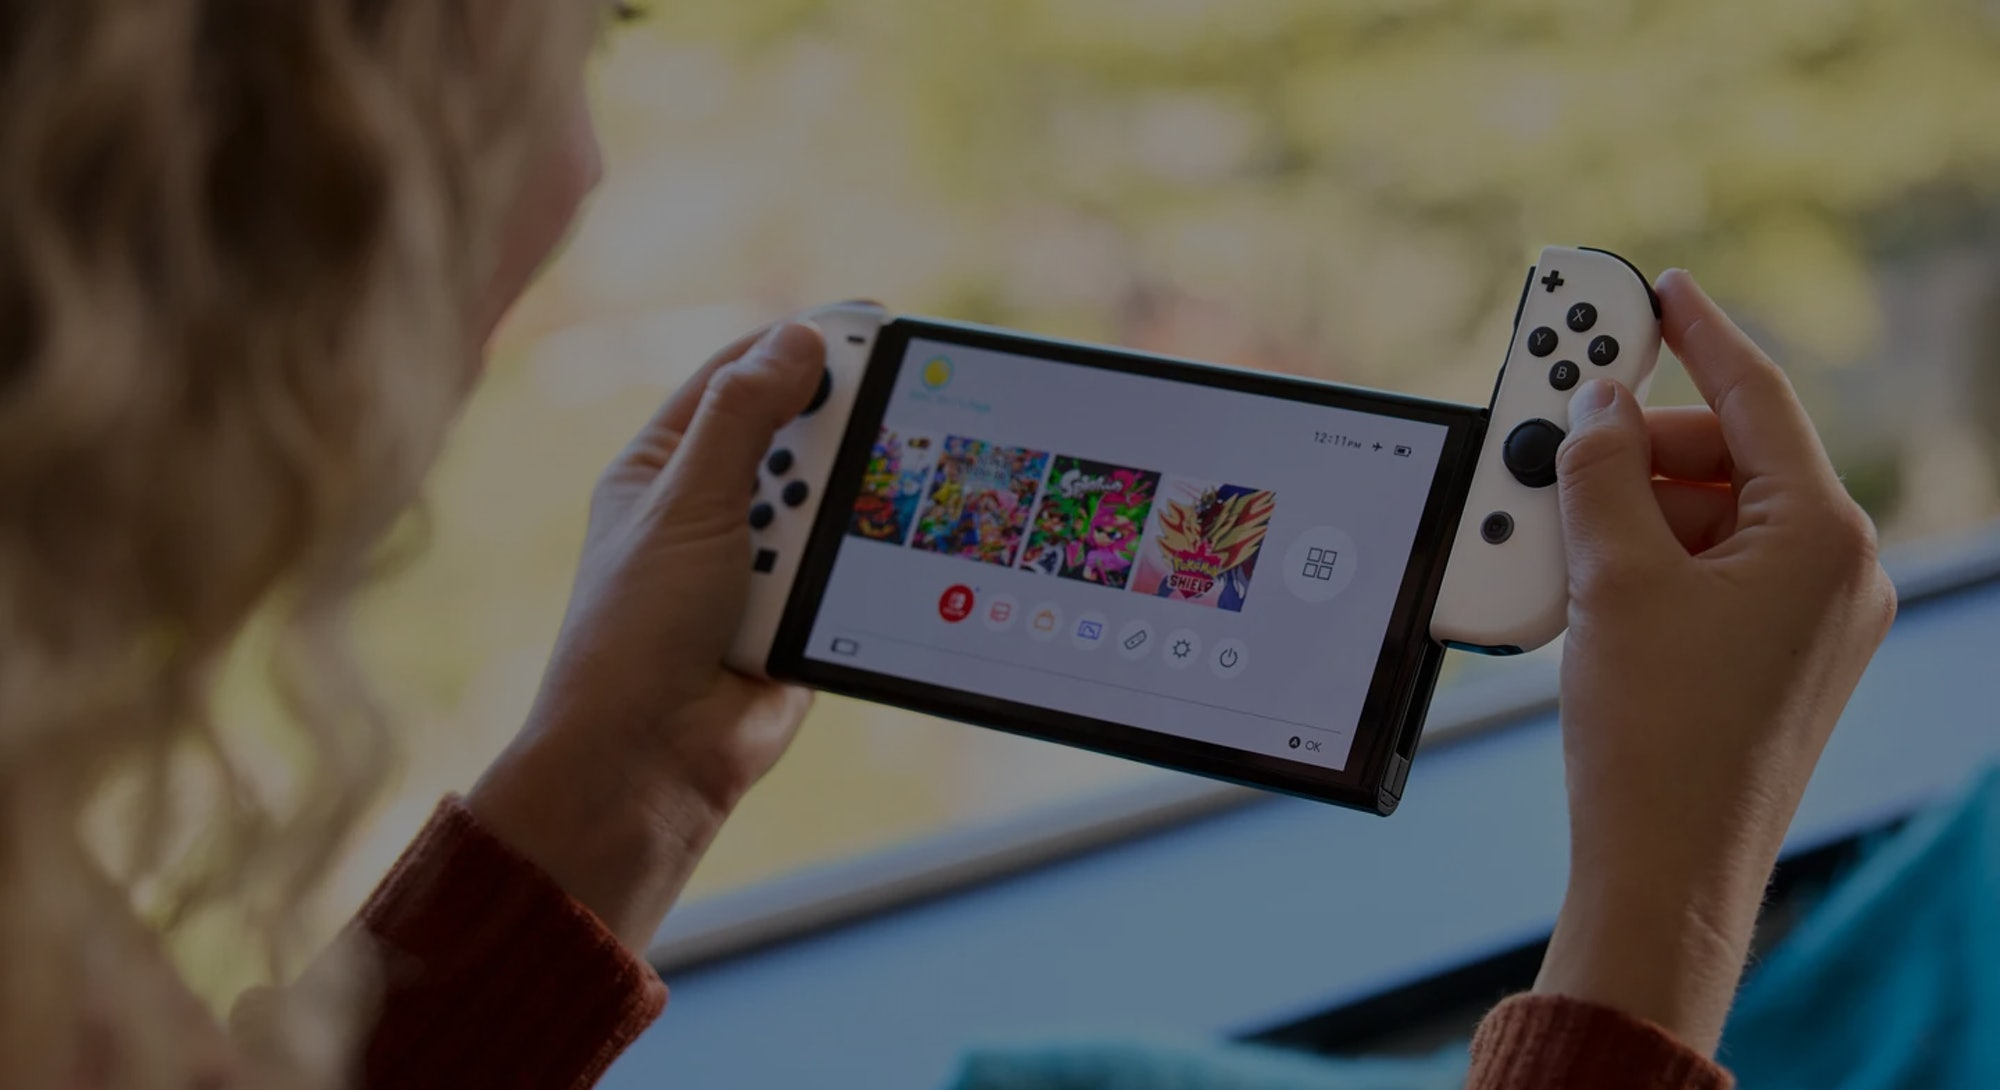 Nintendo Switch in use